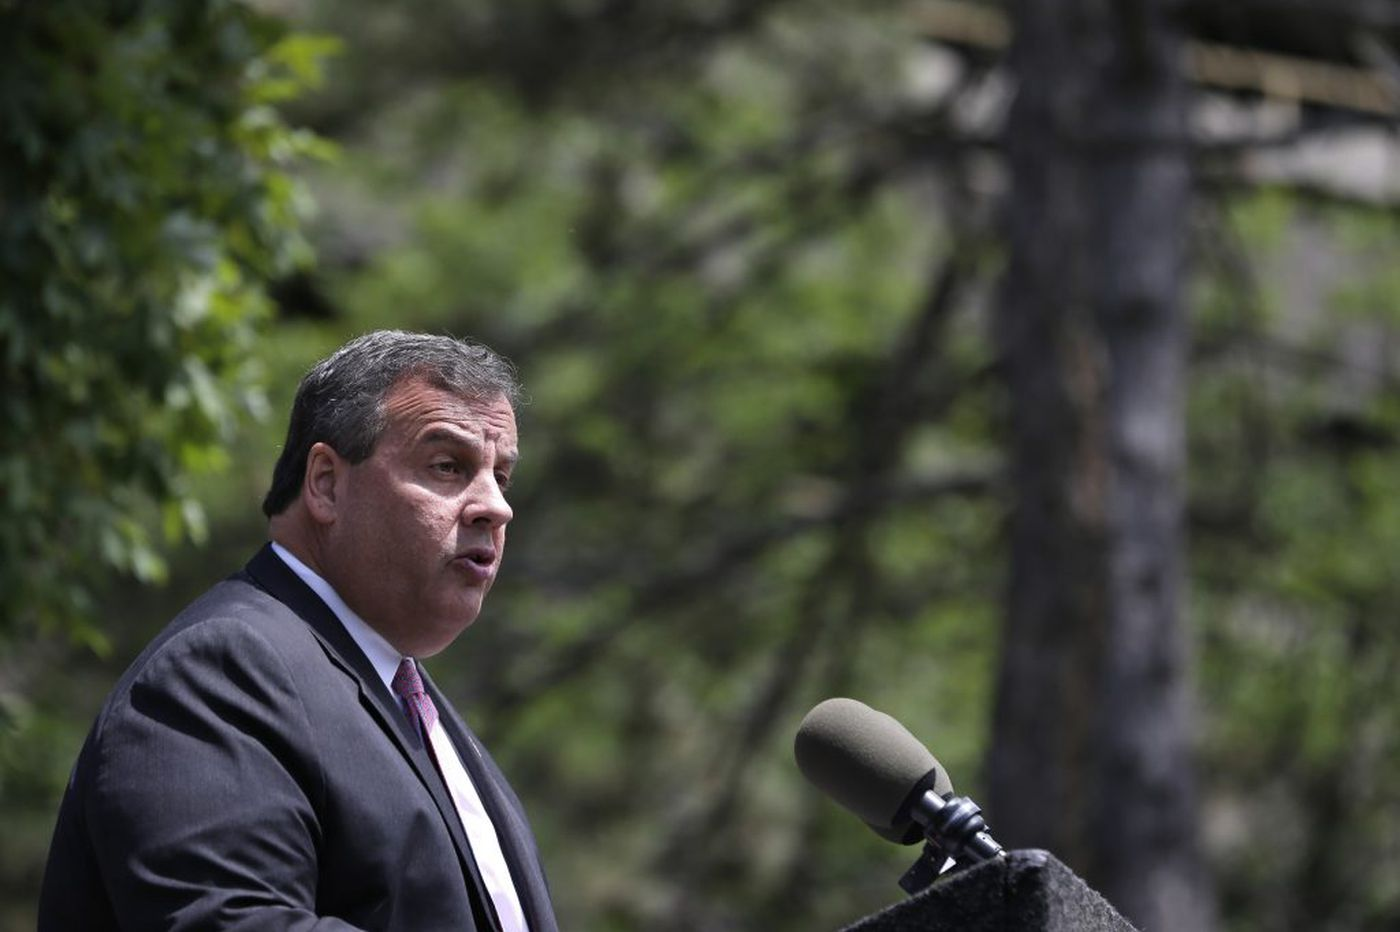 N.J. government shutdown begins with budget vote stalled